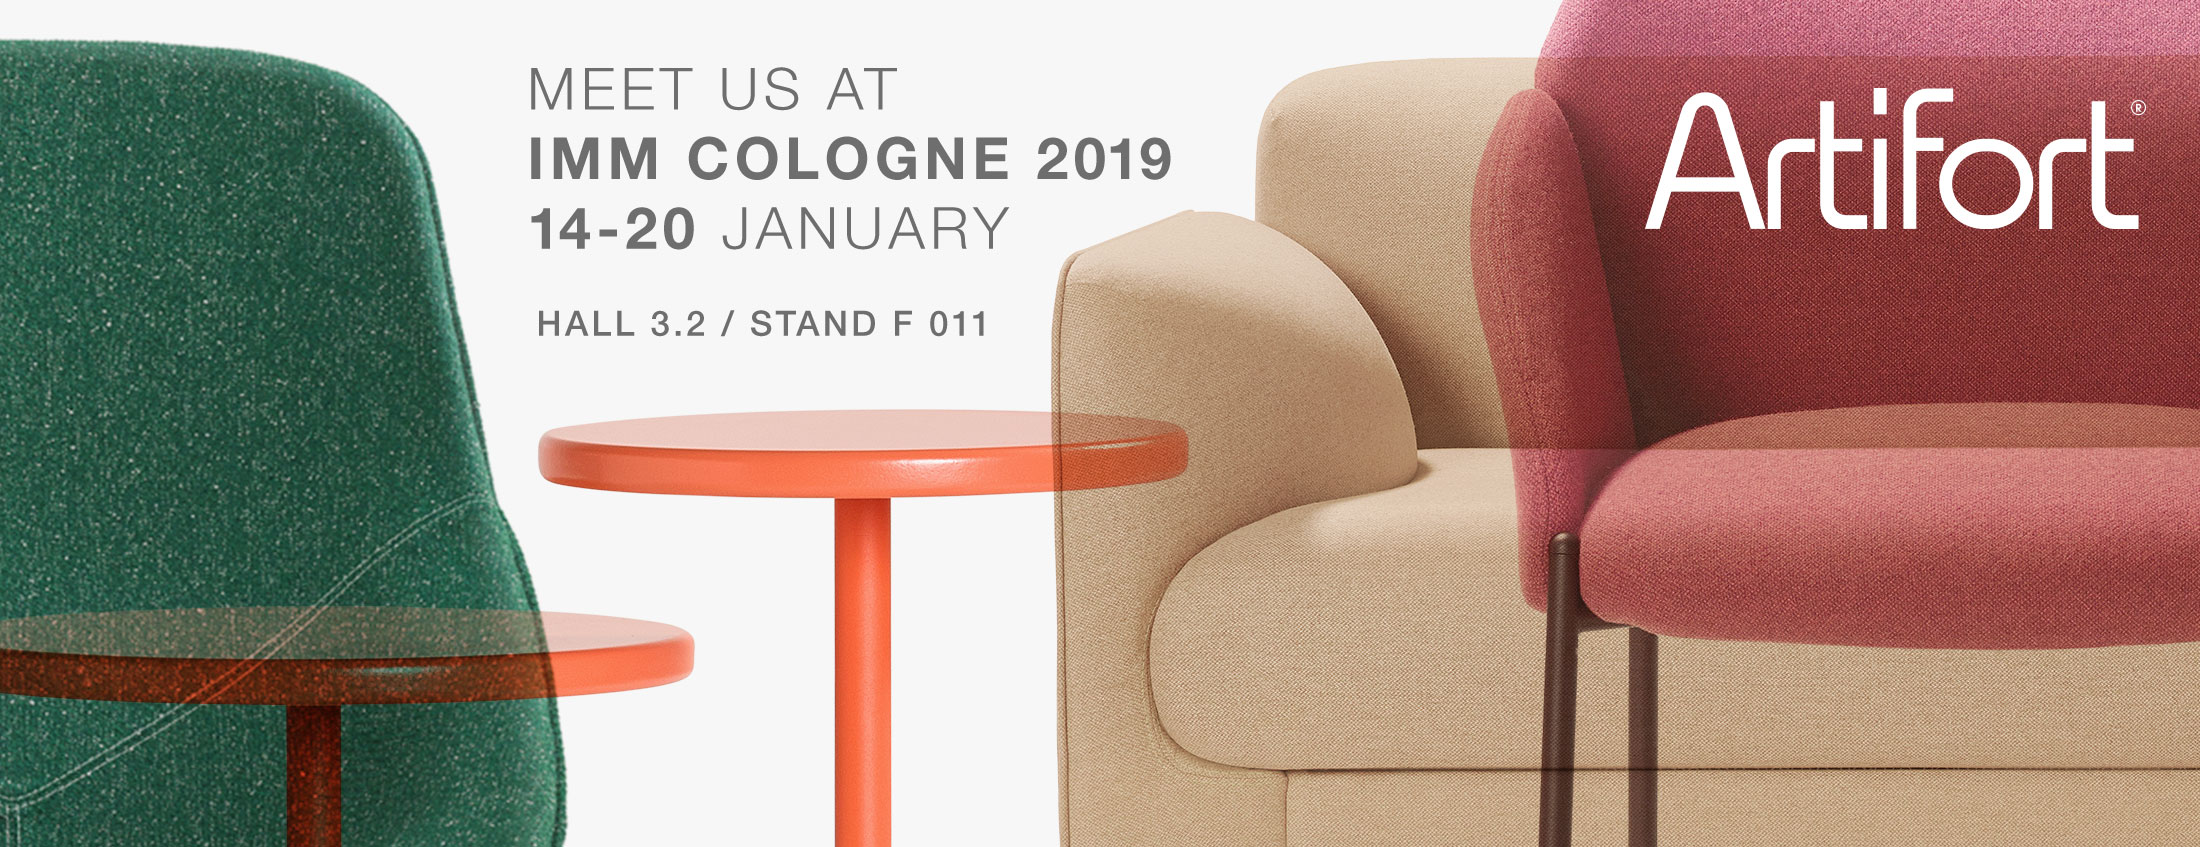 Discover Artifort at IMM 2019. Hall 3.2, stand F011